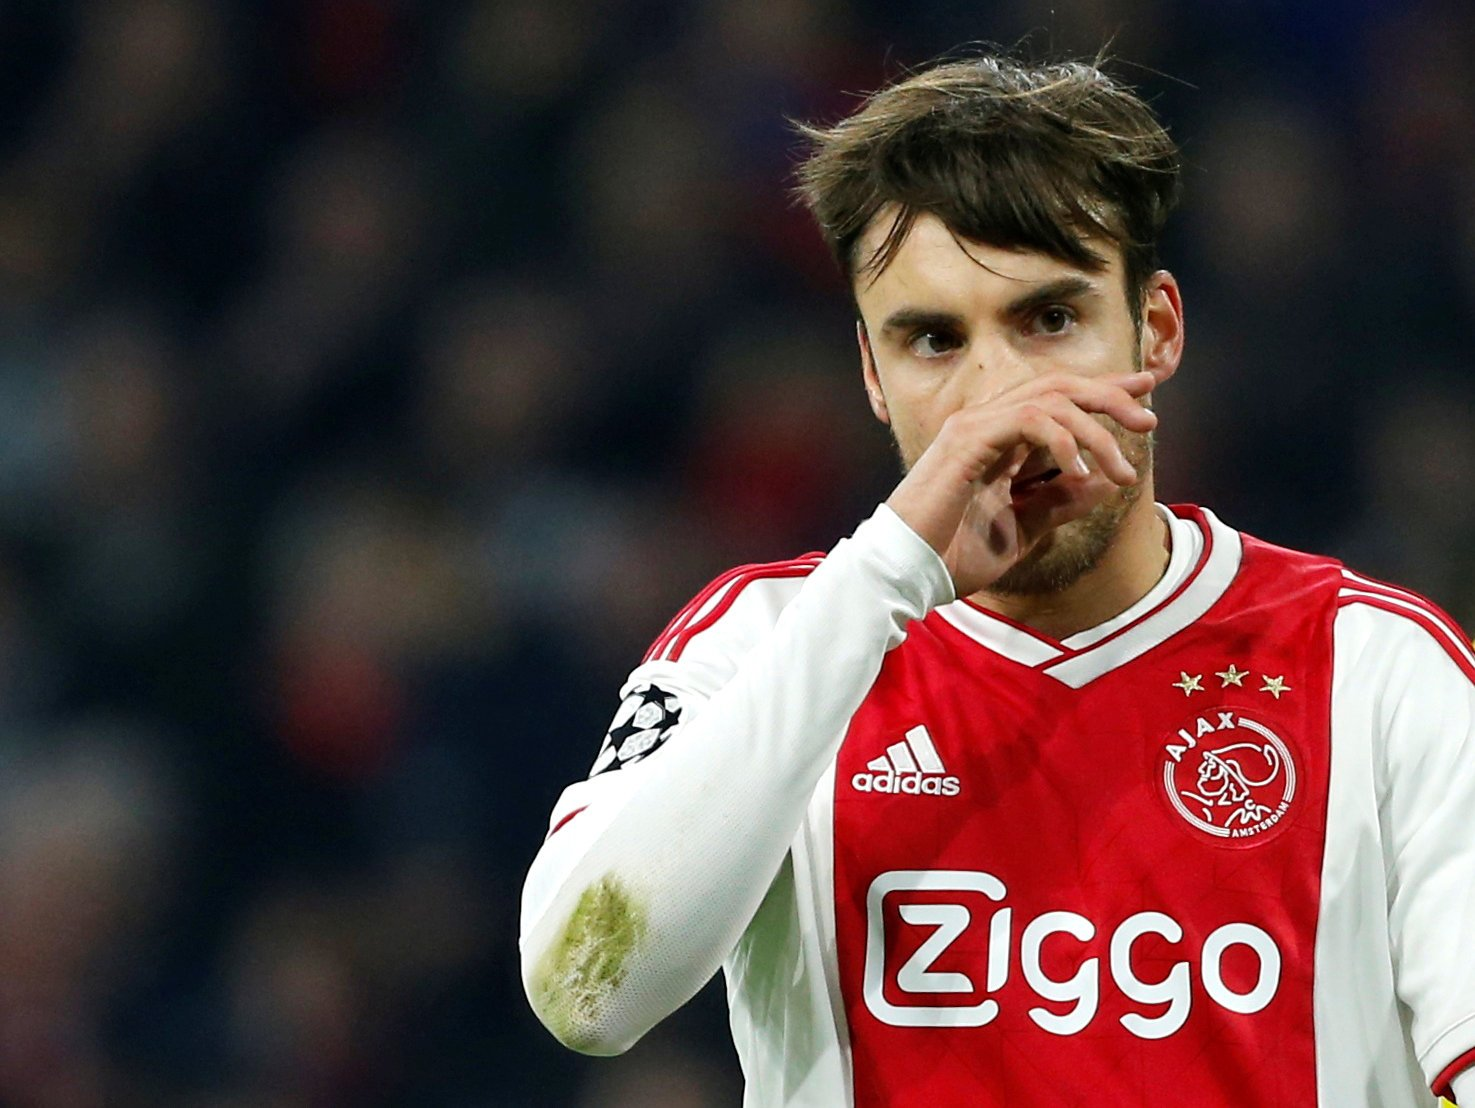 Potential consequences of Arsenal signing Tagliafico